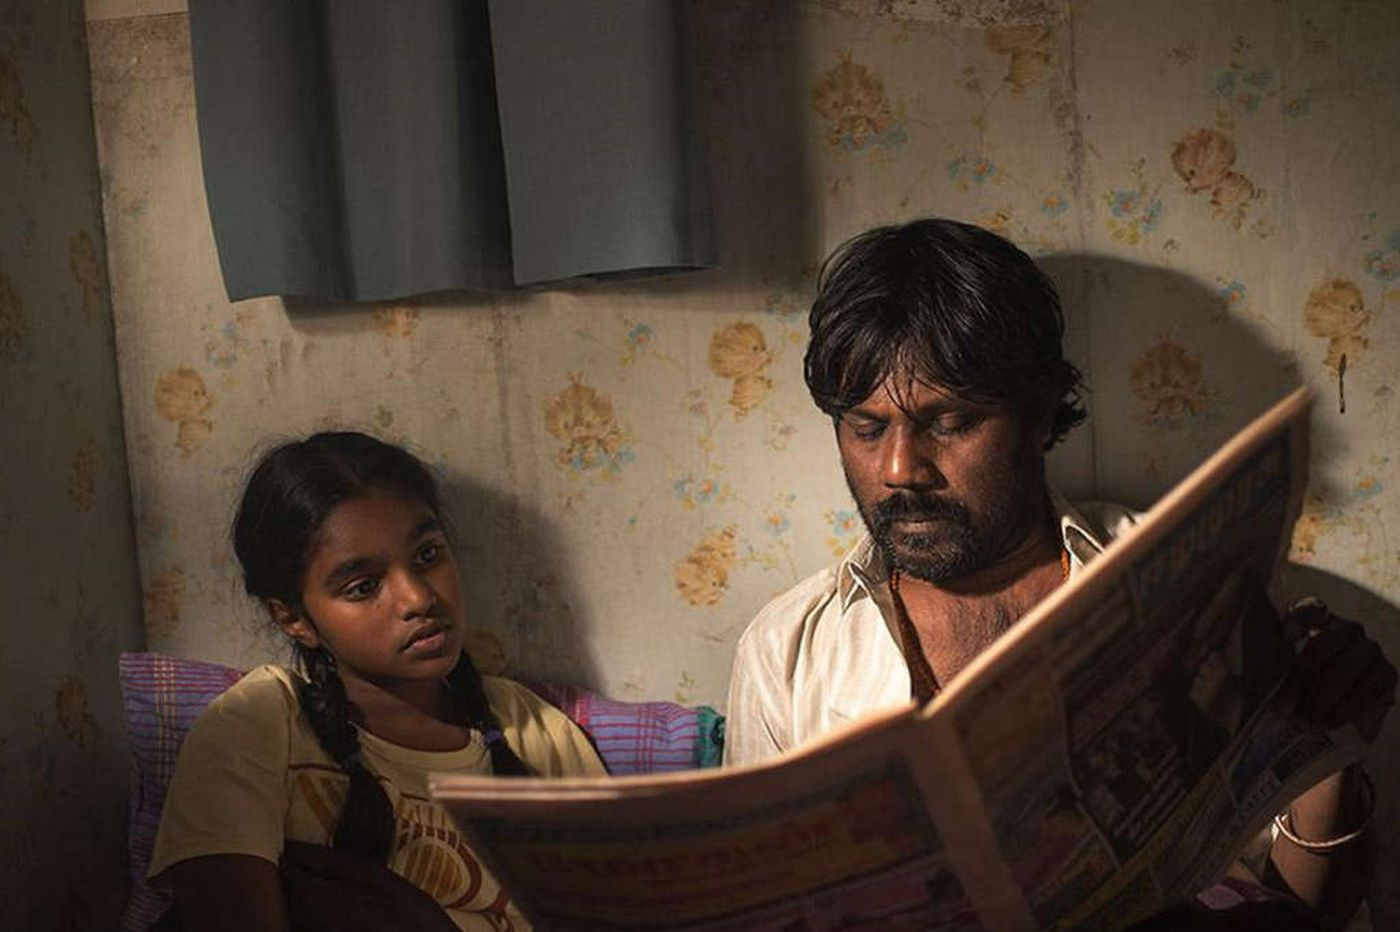 French film 'Dheepan' takes top prize at Cannes